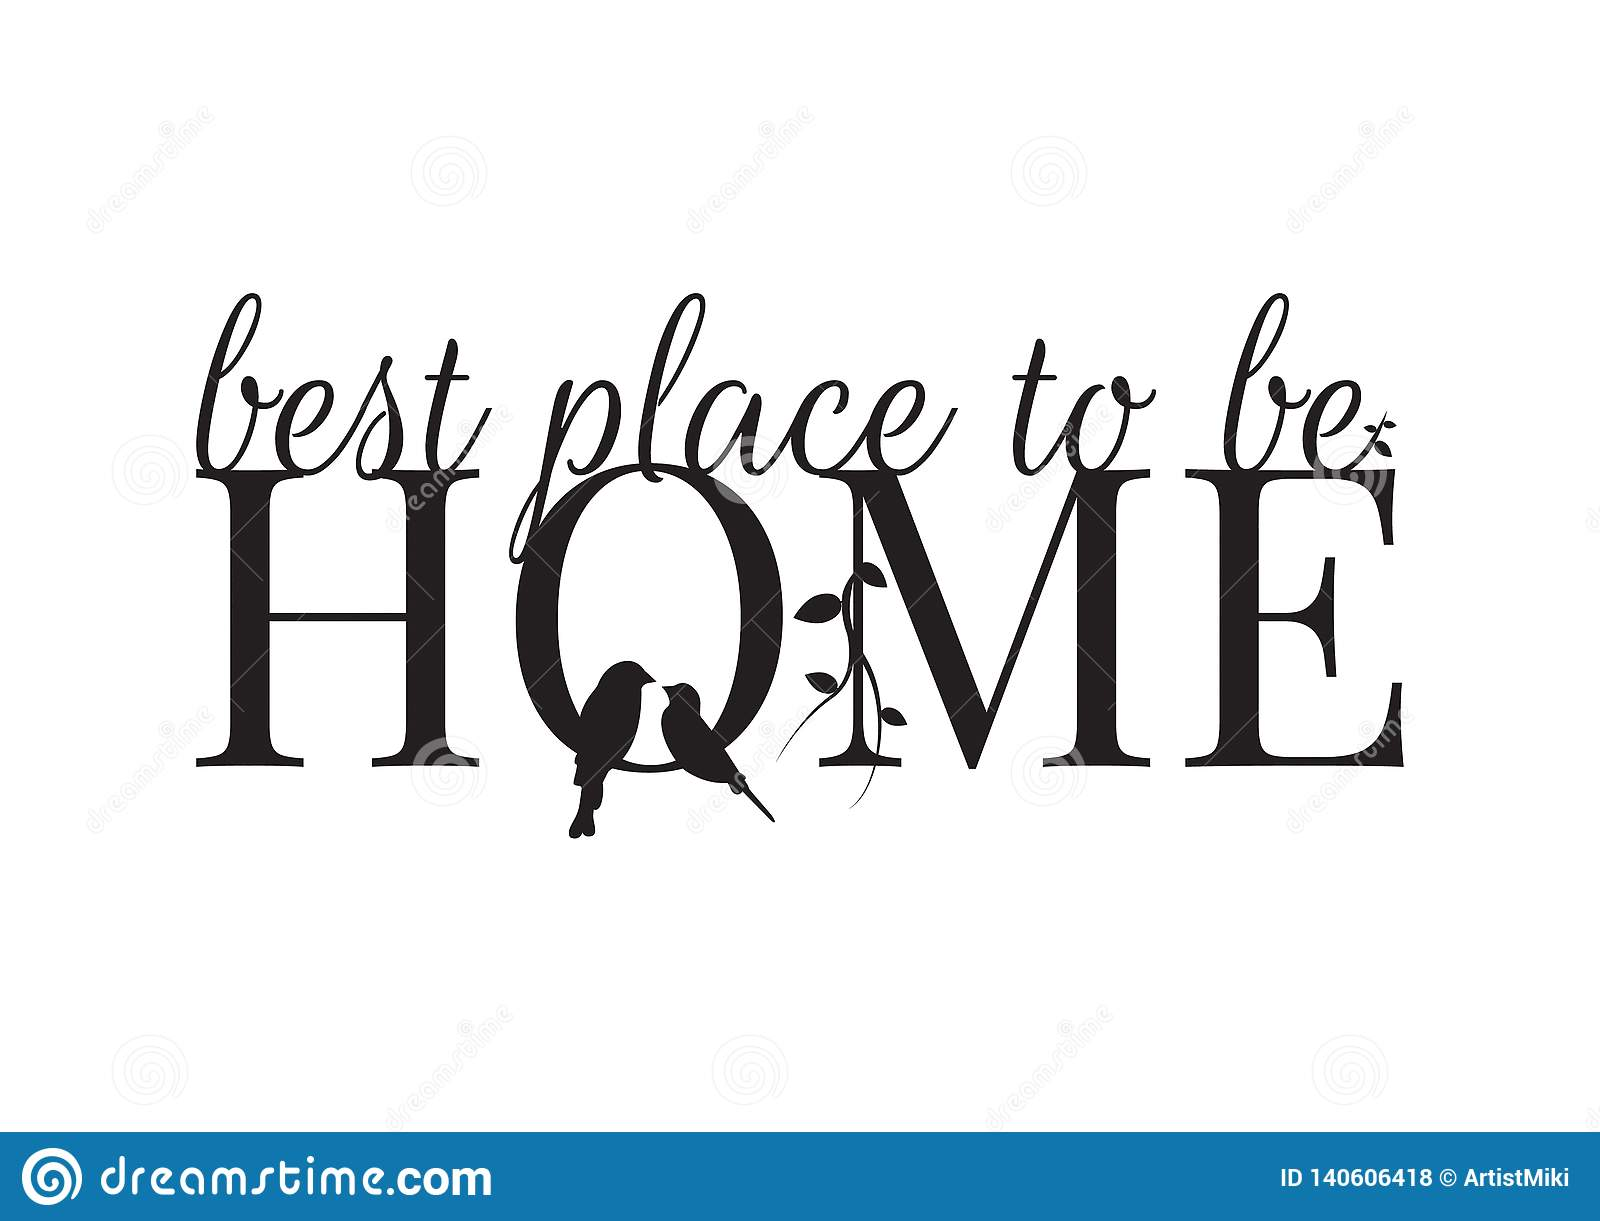 Wall Decals, Home- best place to be, It`s Good to be Home, Bird Silhouette and Branch